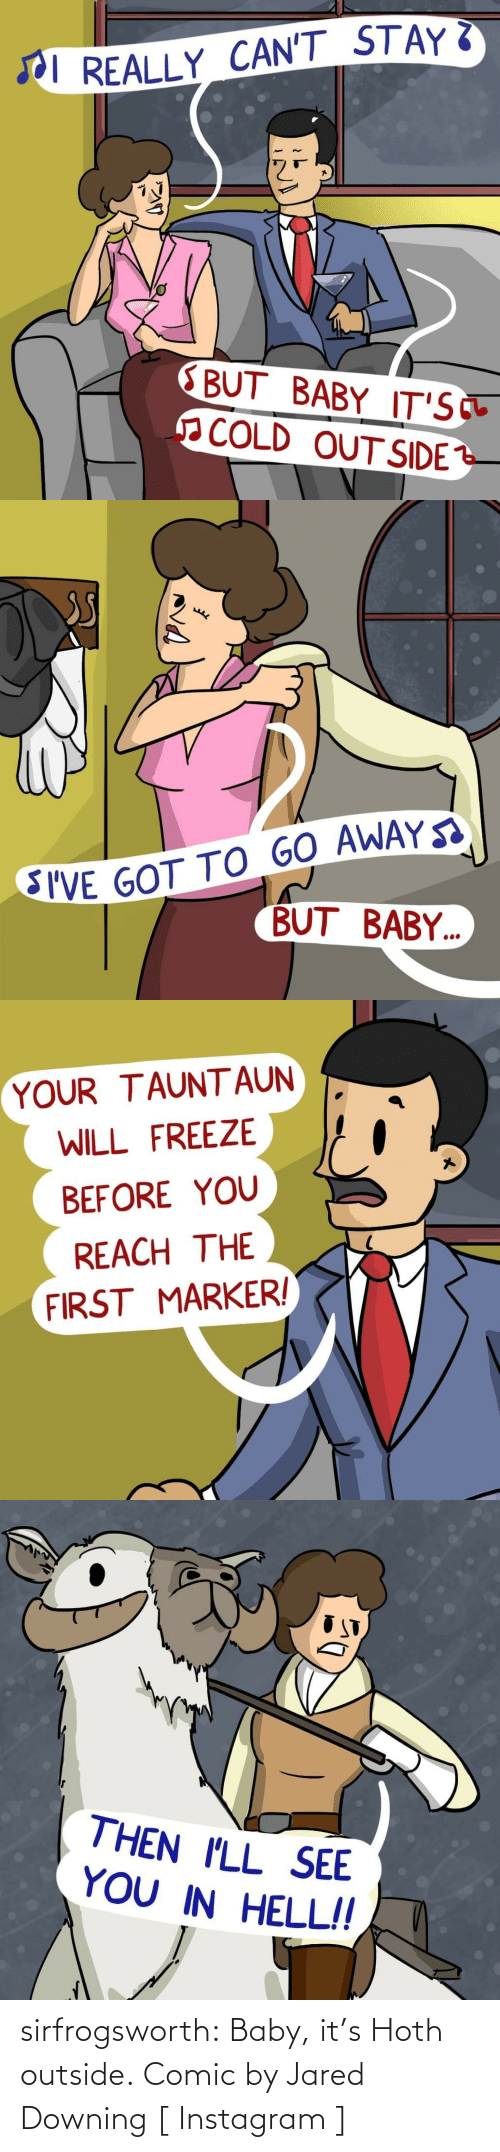 Hoth, Instagram, and Tumblr: I REALLY CAN'T STAY  BUT BABY IT'S  COLD OUT SIDE   SI'VE GOT TO GO AWAY  BUT BABY..   YOUR TAUNT AUN  WILL FREEZE  BEFORE YOU  REACH THE  FIRST MARKER!   THEN I'LL SEE  YOU IN HELL!! sirfrogsworth: Baby, it's Hoth outside. Comic by Jared Downing [ Instagram ]